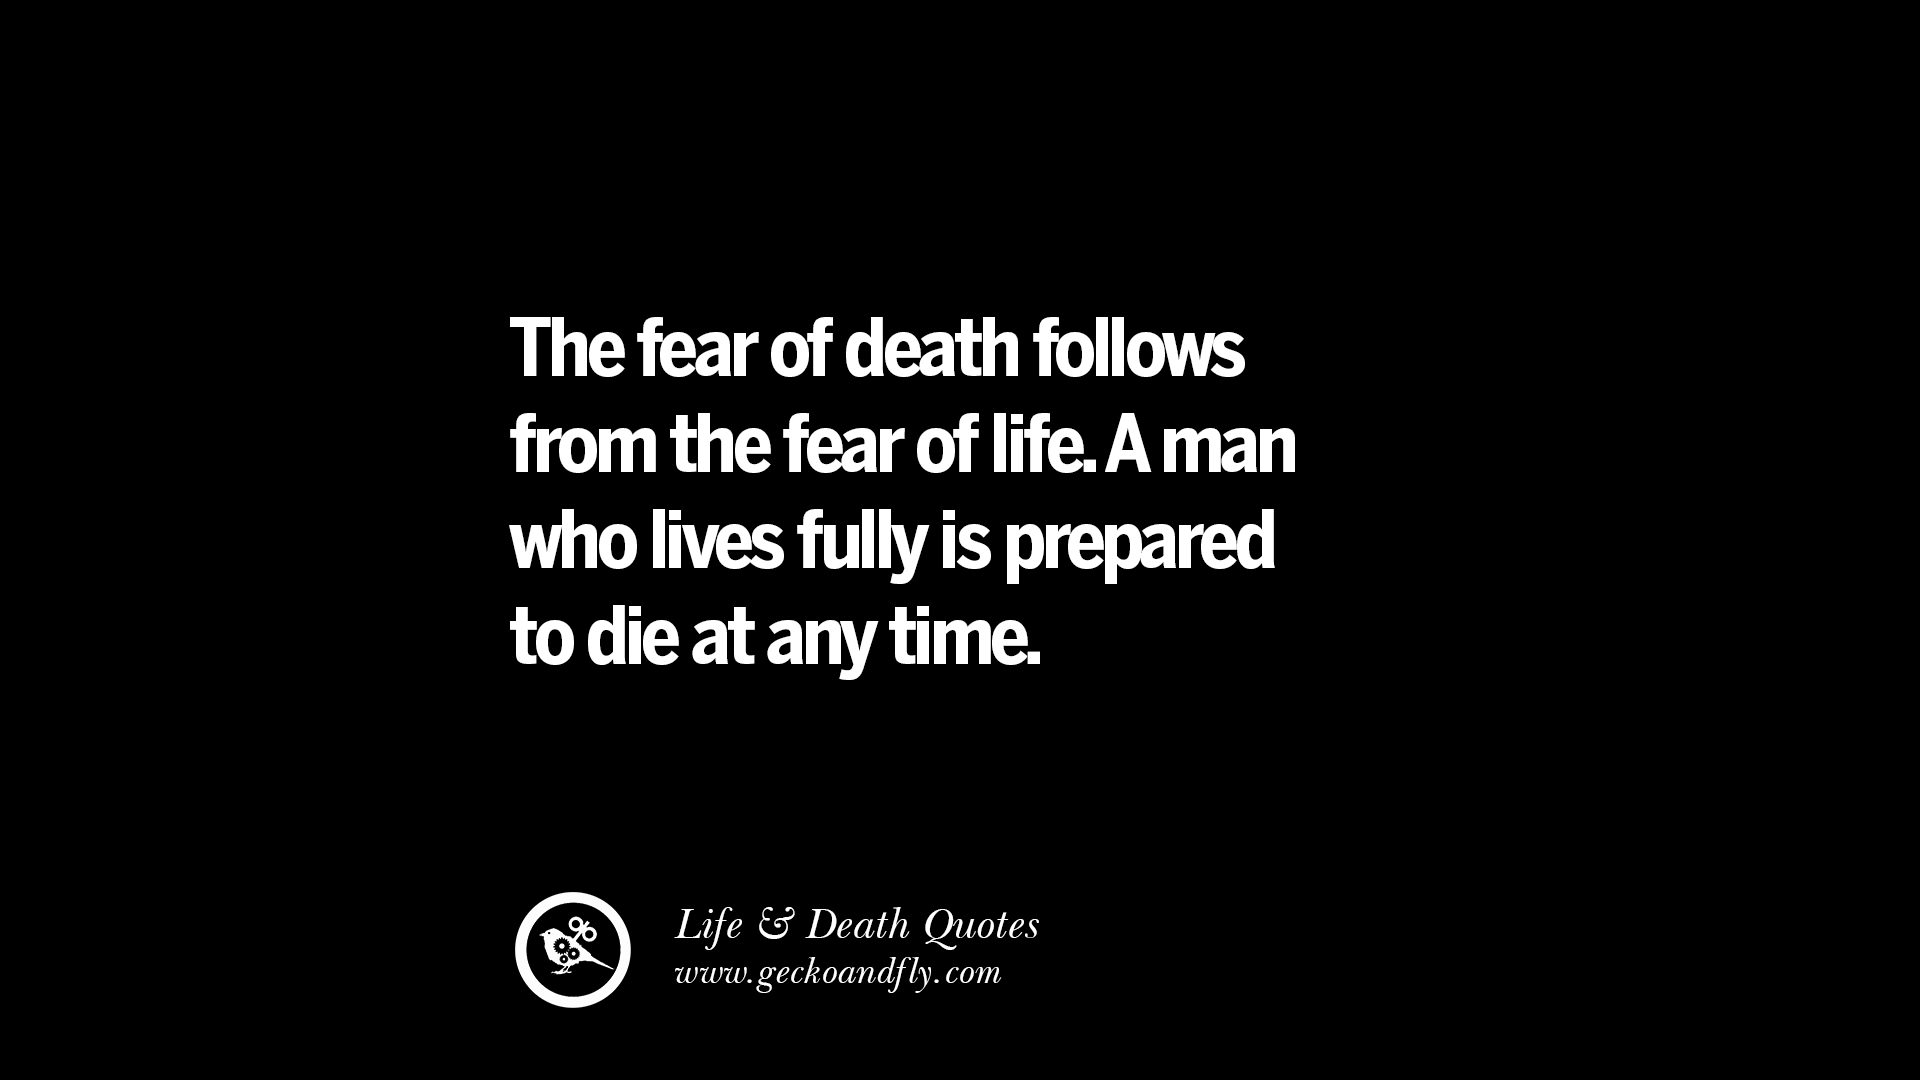 Life Death Quotes Twitter thumbnail